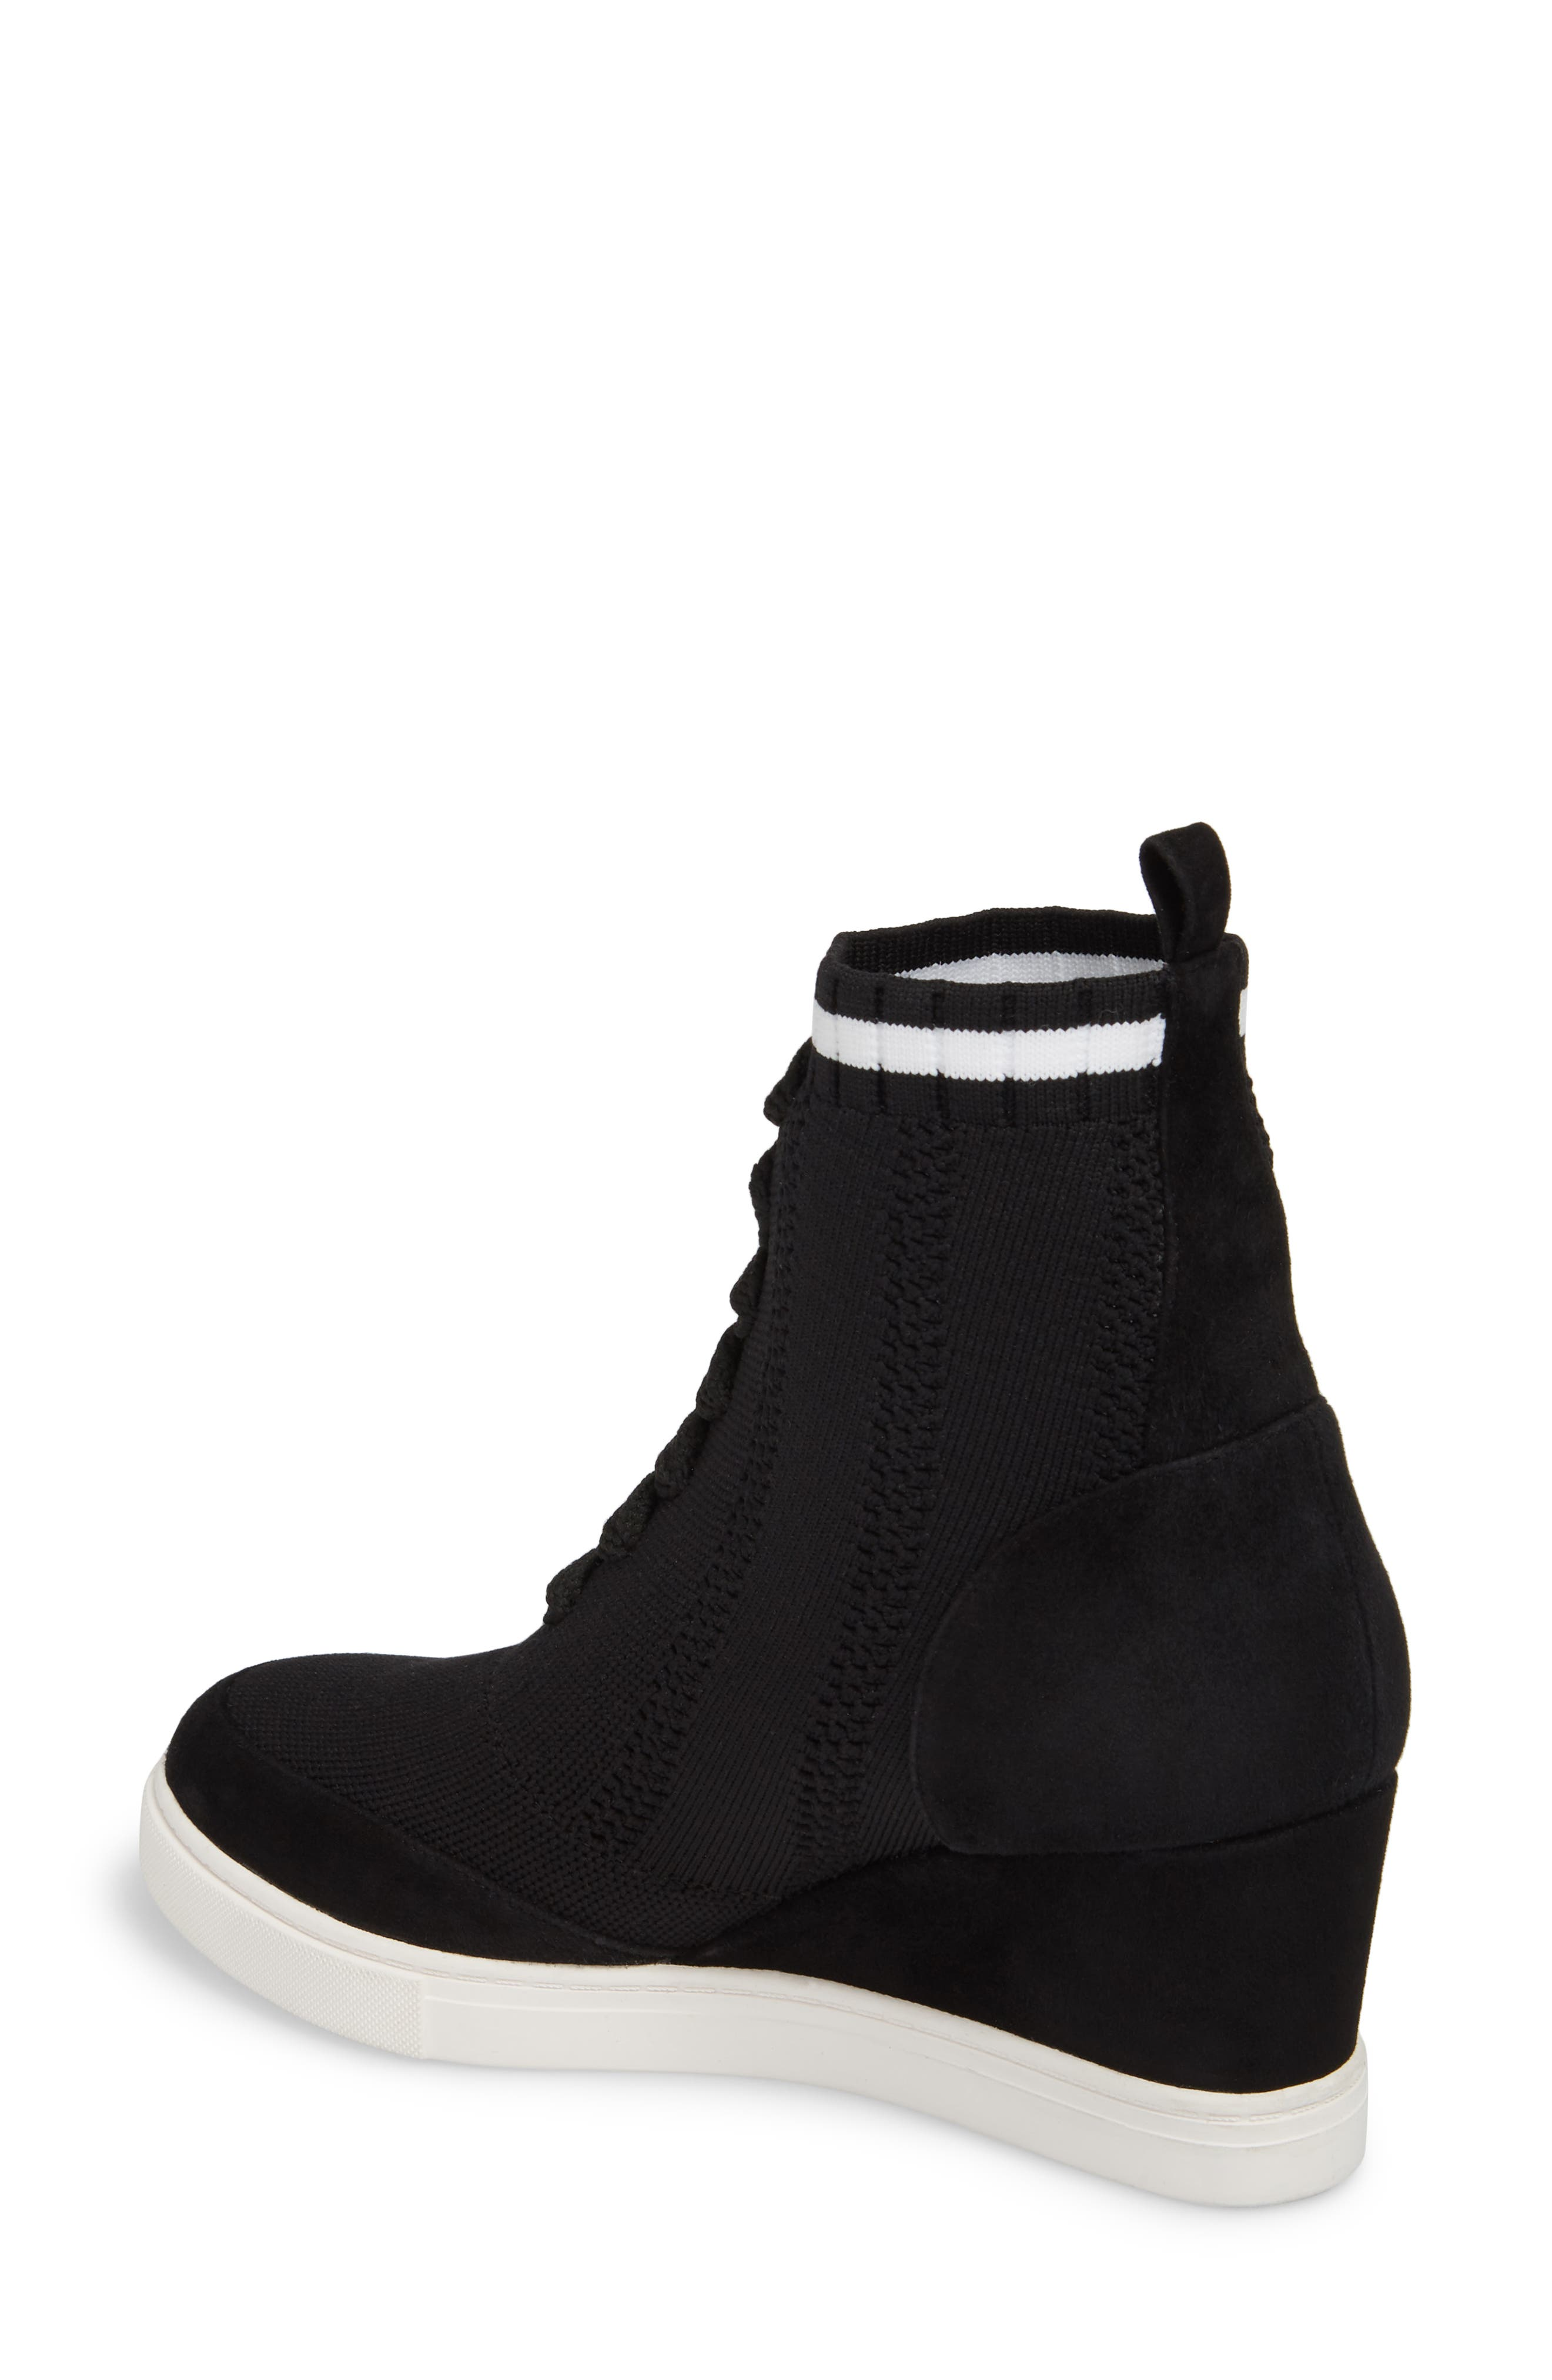 LINEA PAOLO, Fabiana Wedge Sneaker, Alternate thumbnail 2, color, BLACK SUEDE